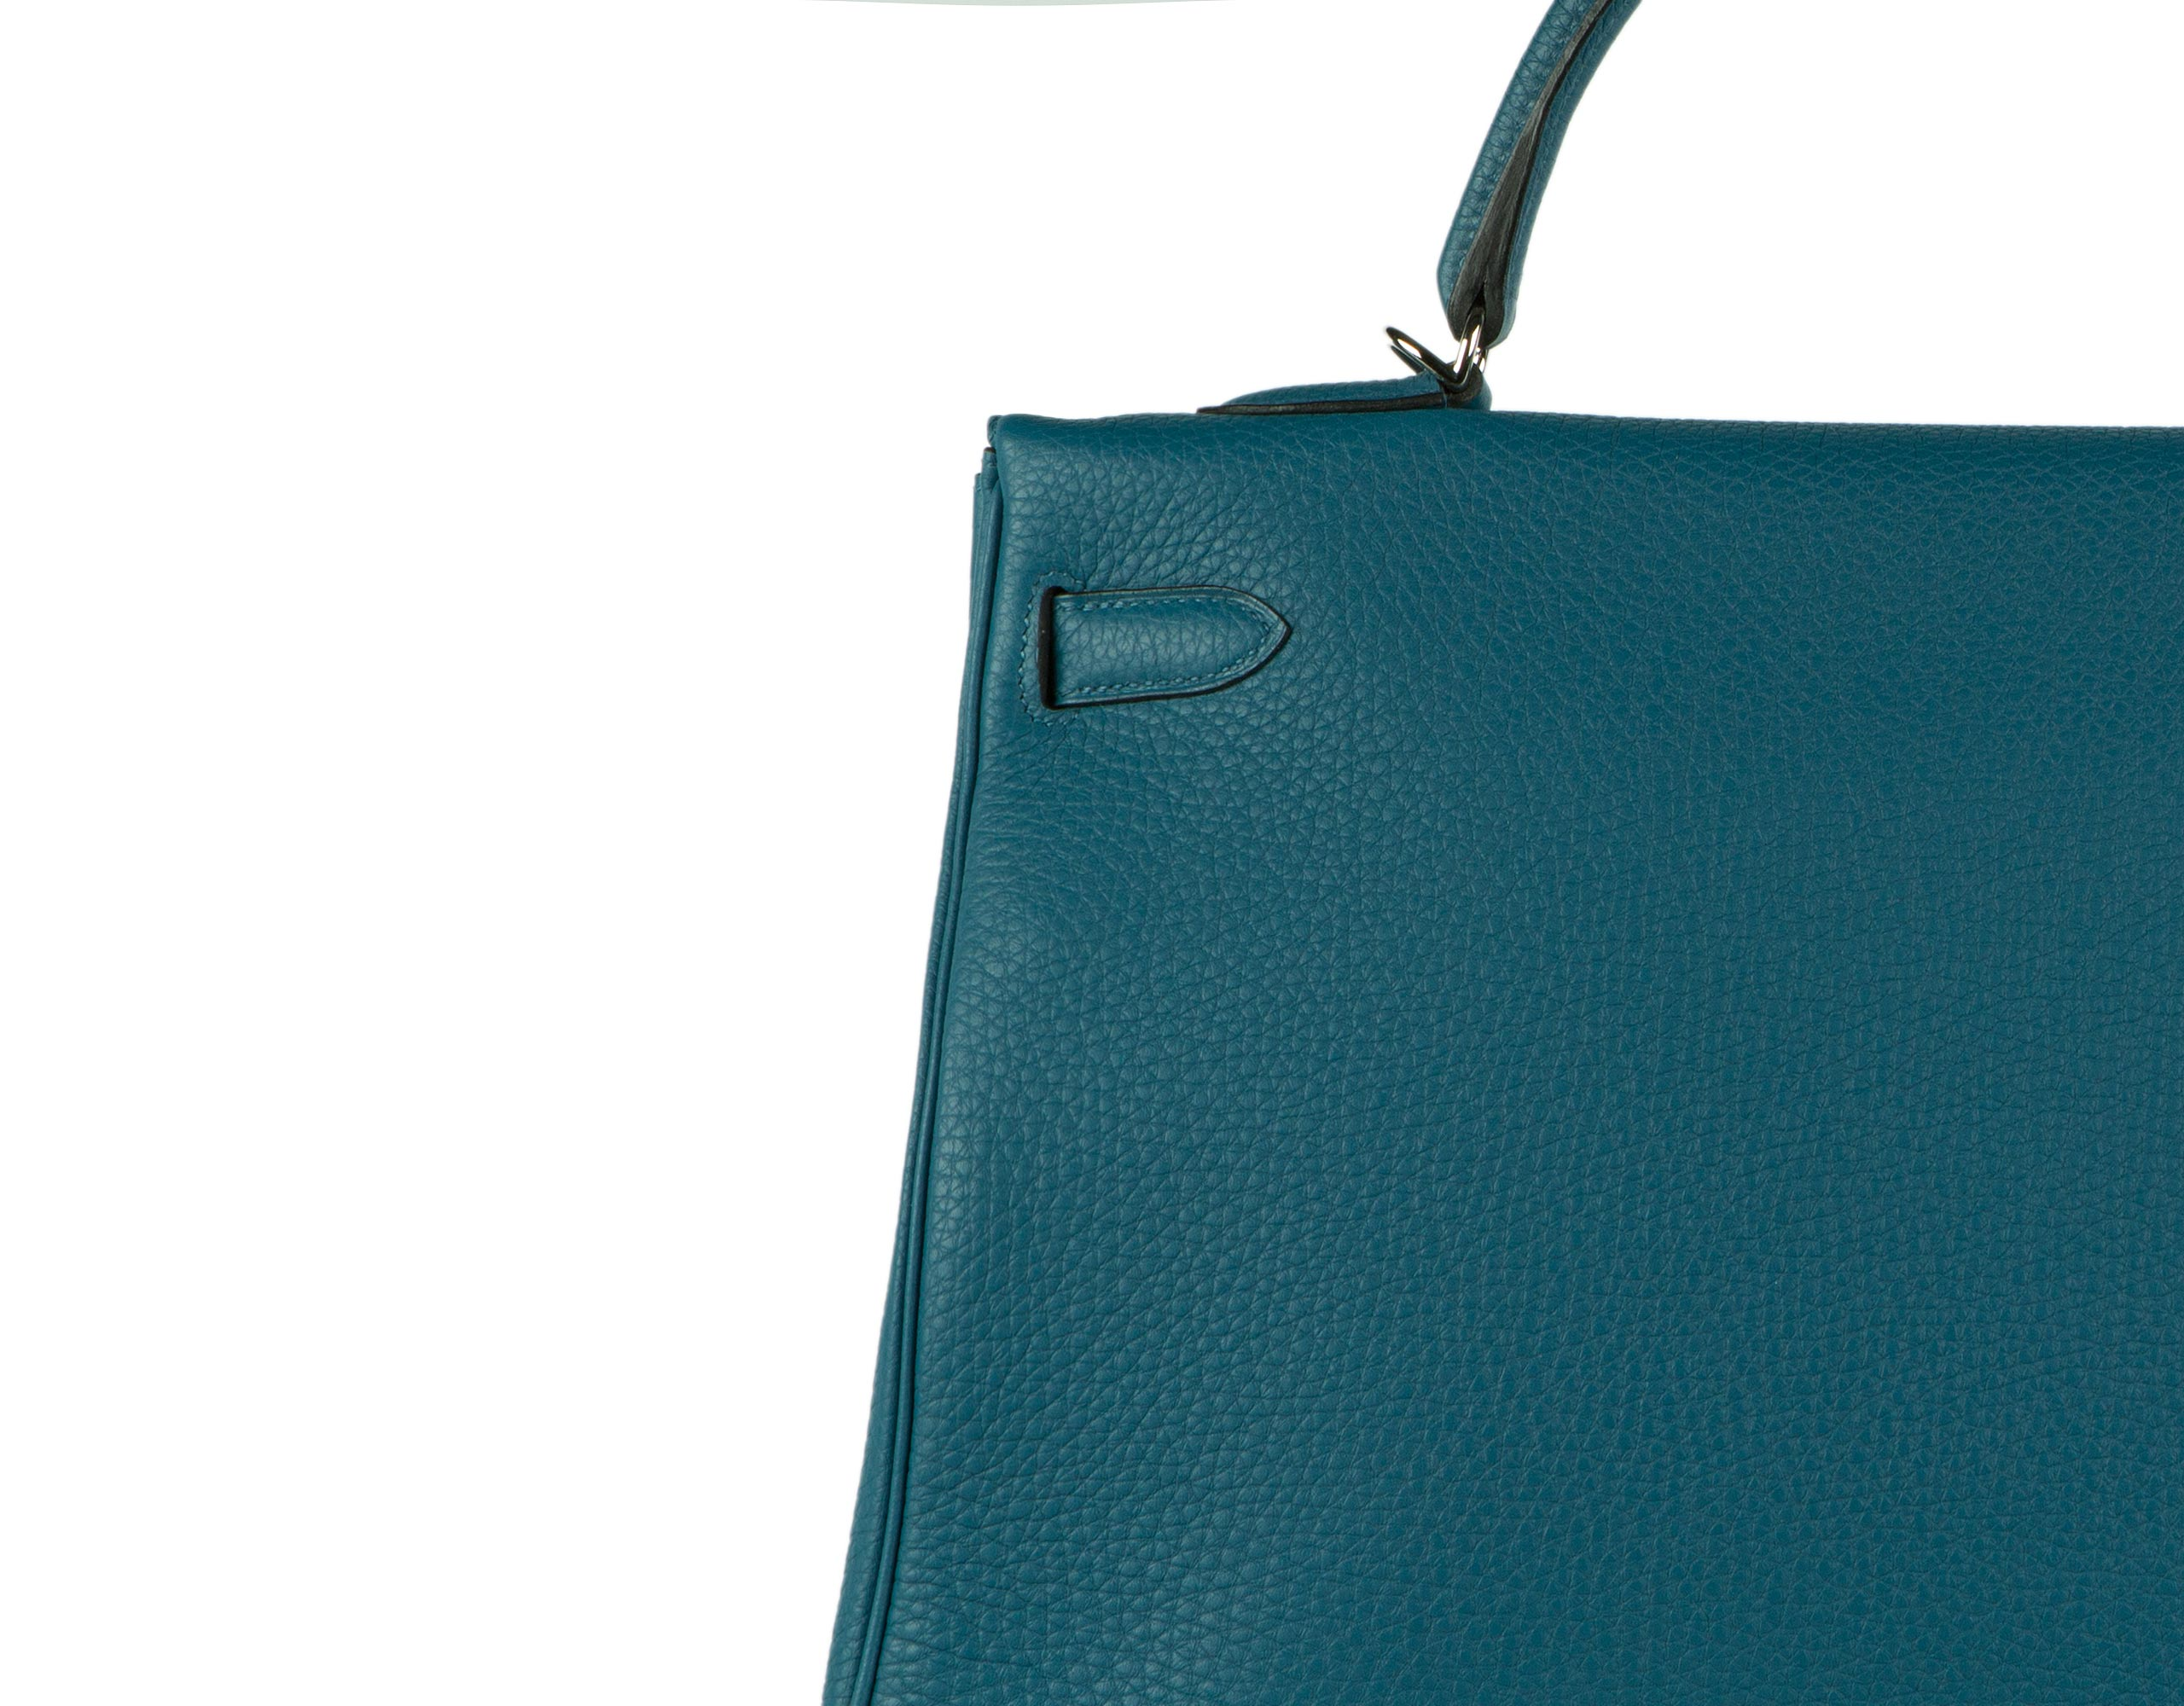 Hermes Bag Kelly Blue Cobalt Togo 35cm K80 Stitching